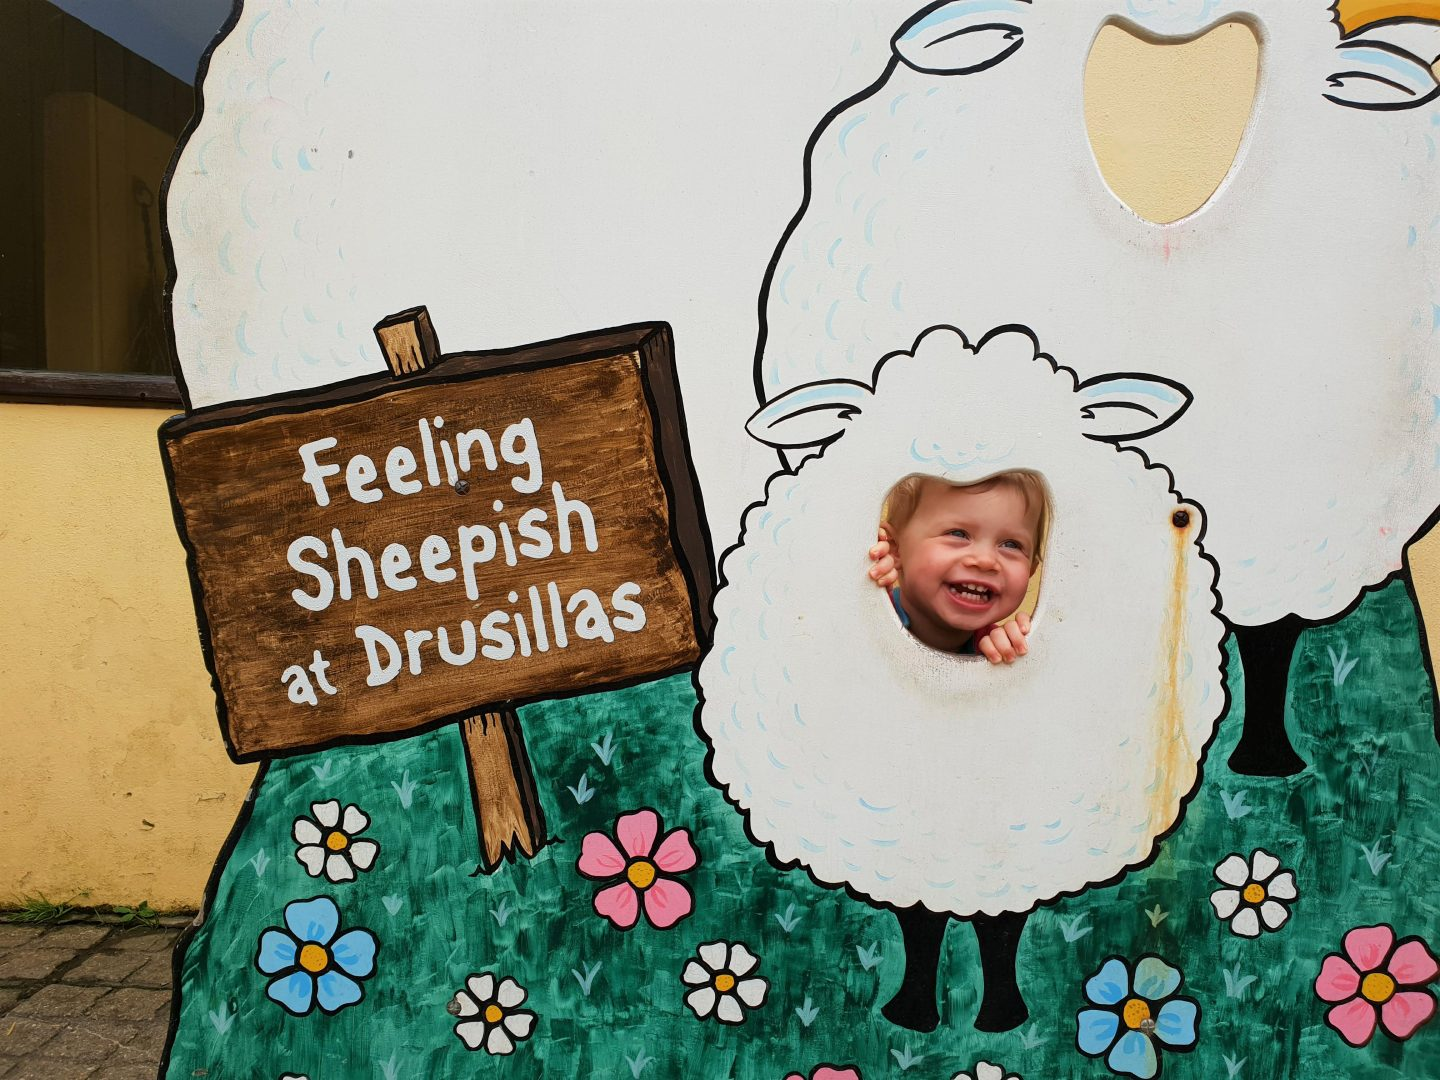 Sheep photo cutout at Drusillas Park